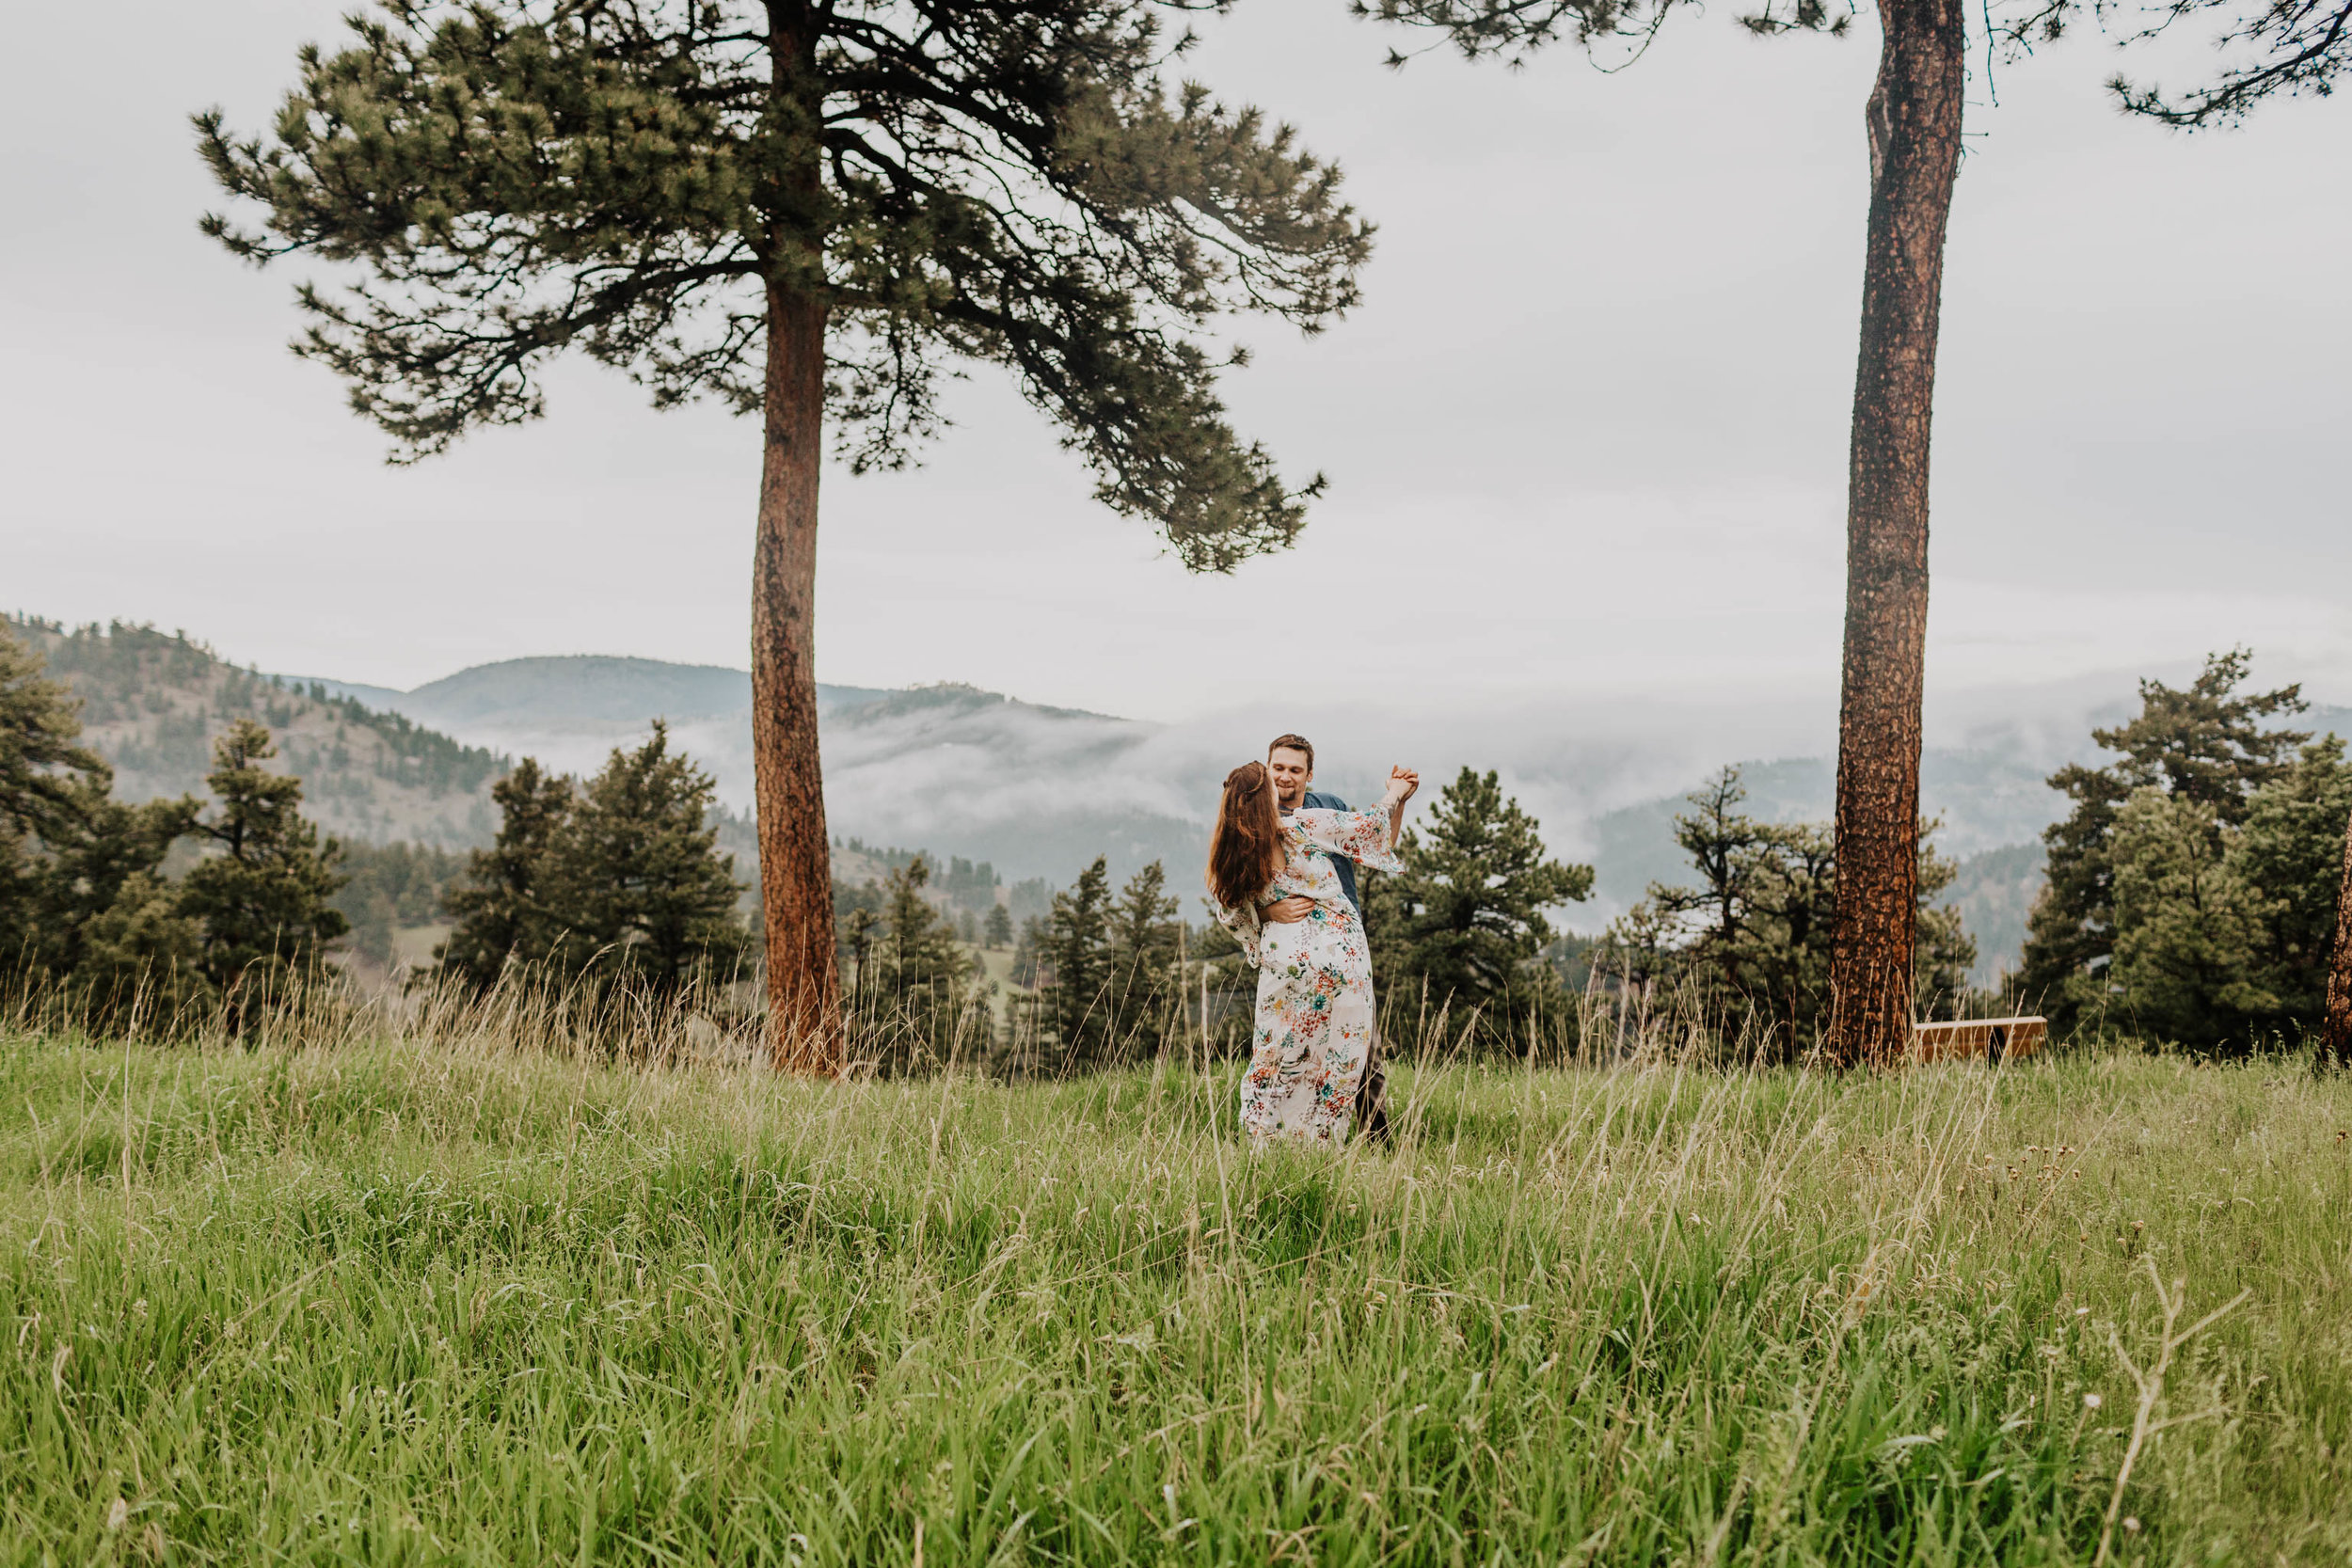 Sheena_Shahangian_Photography_Engagement_Photo_Shoot_Shelby_and_Andrew_Boulder_Colorado-121.jpg